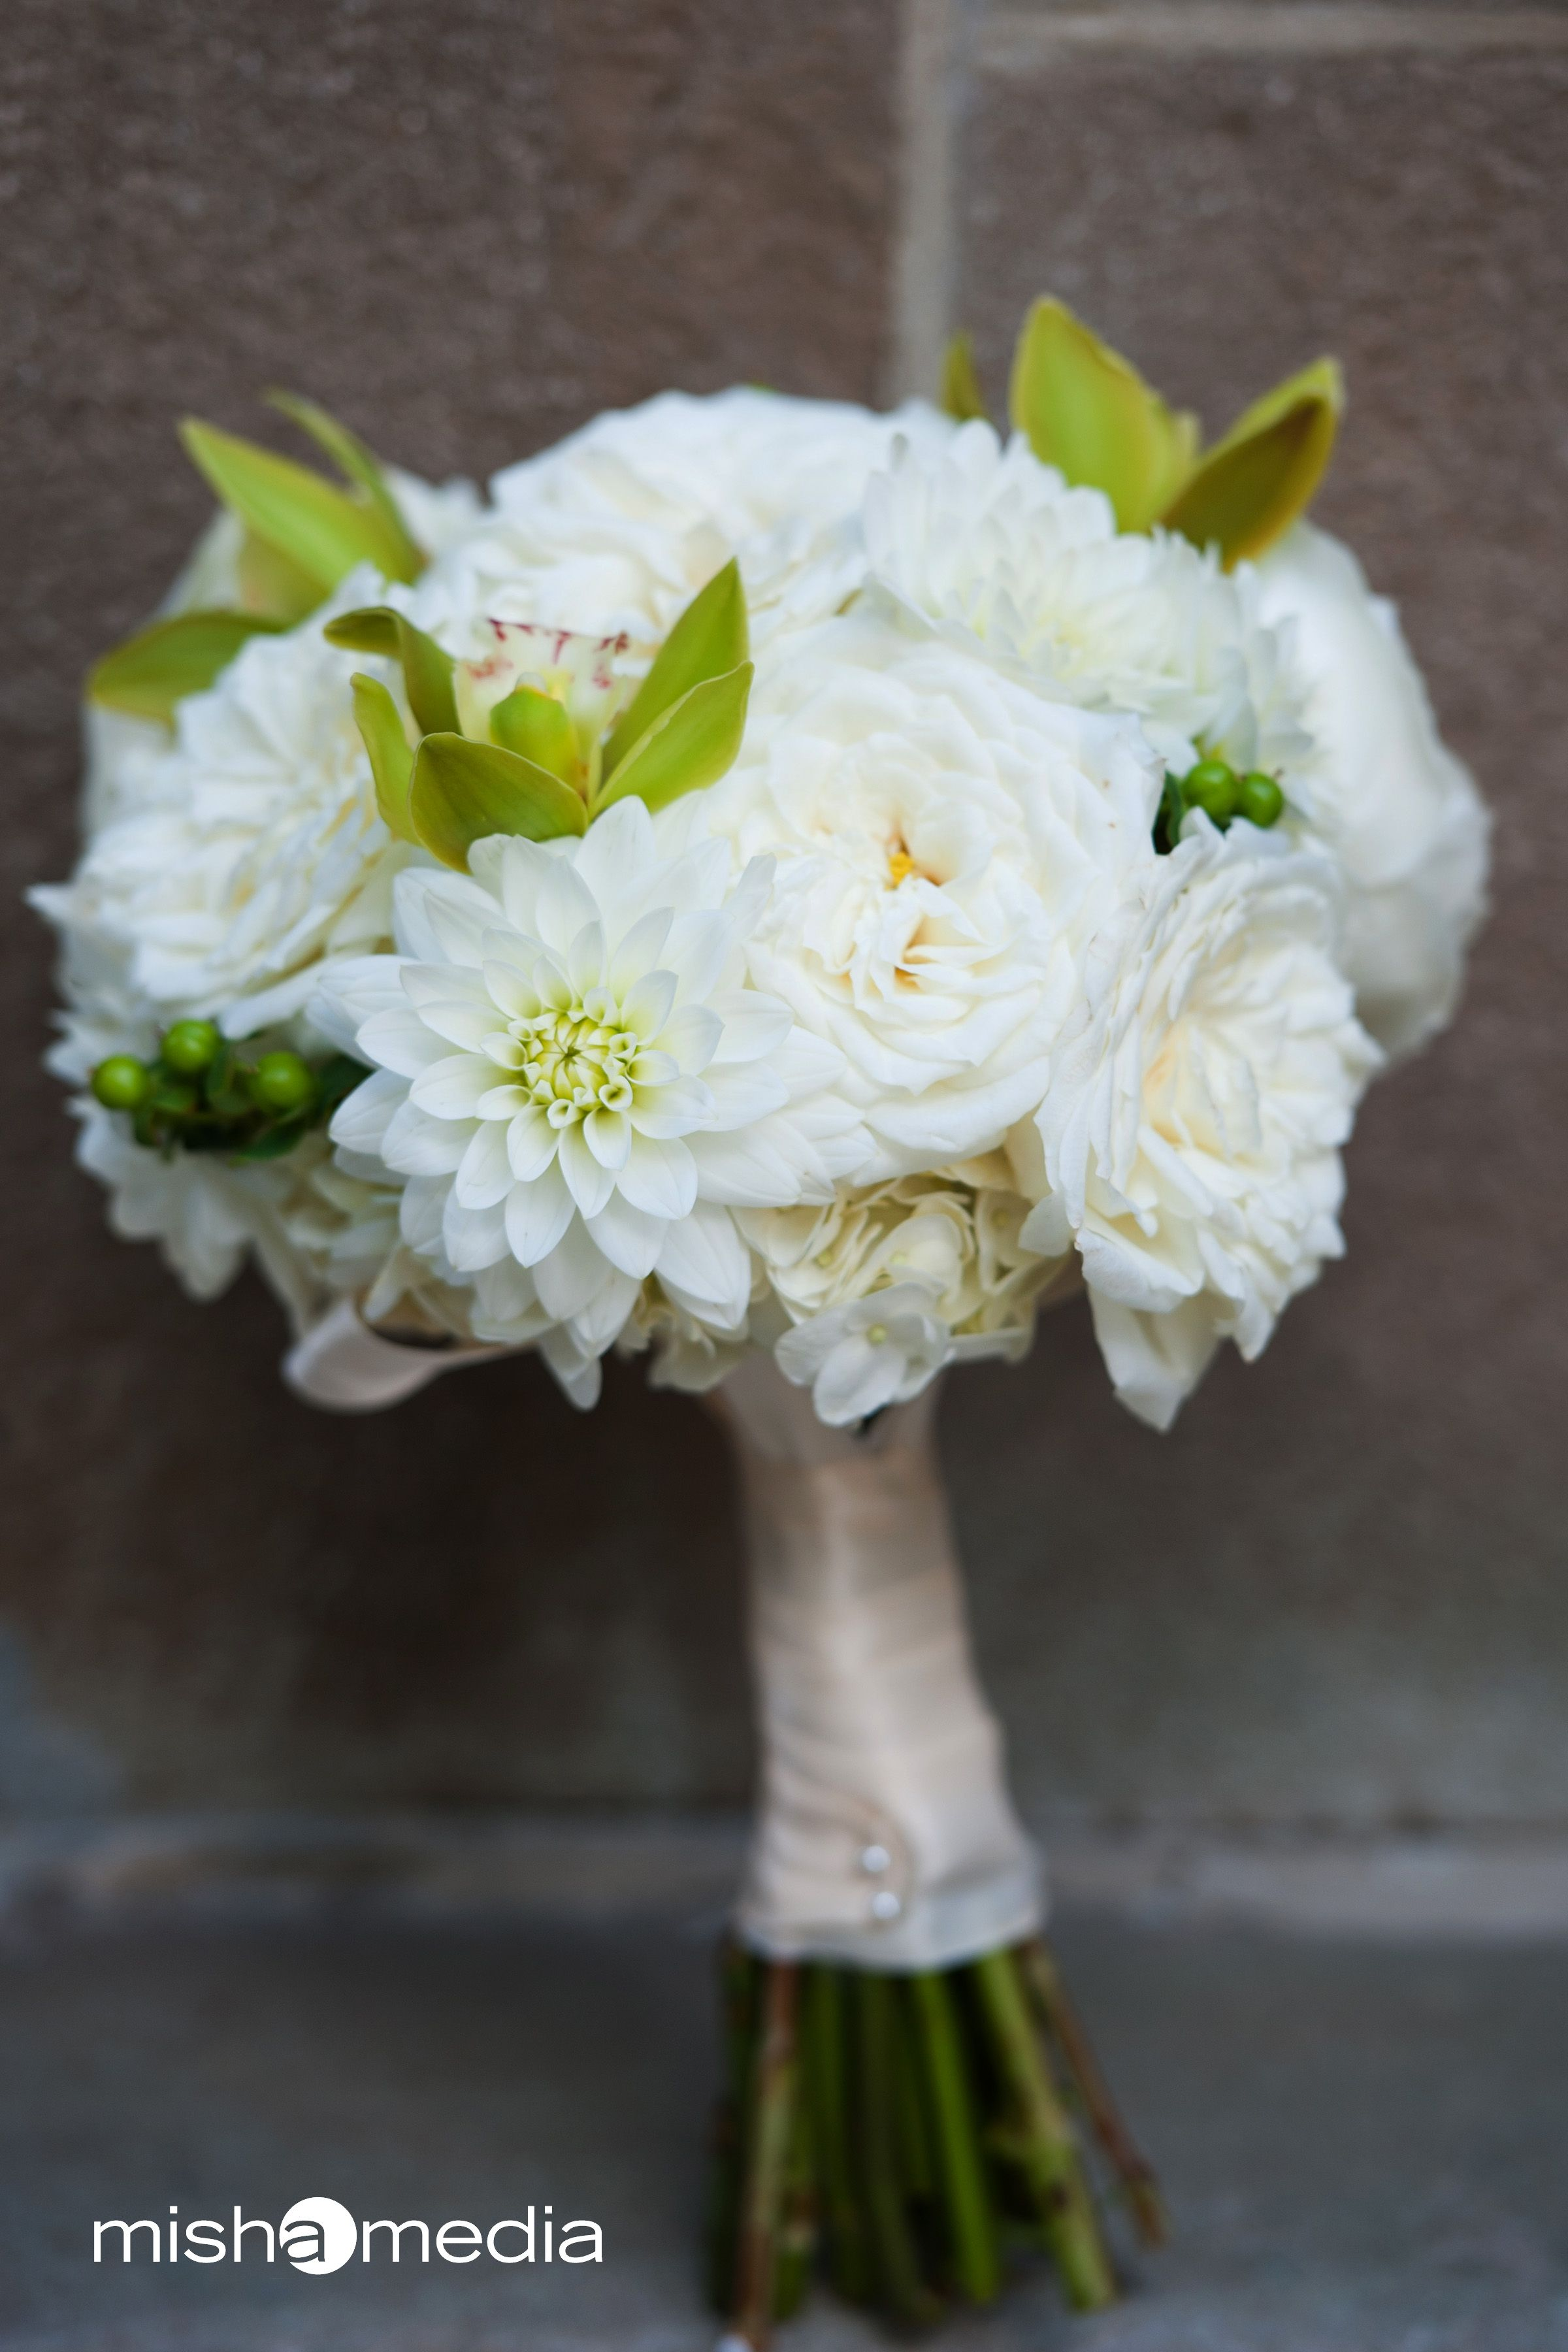 bridal bouquet of alabaster garden roses white dahlias green hypercium berries and mini green